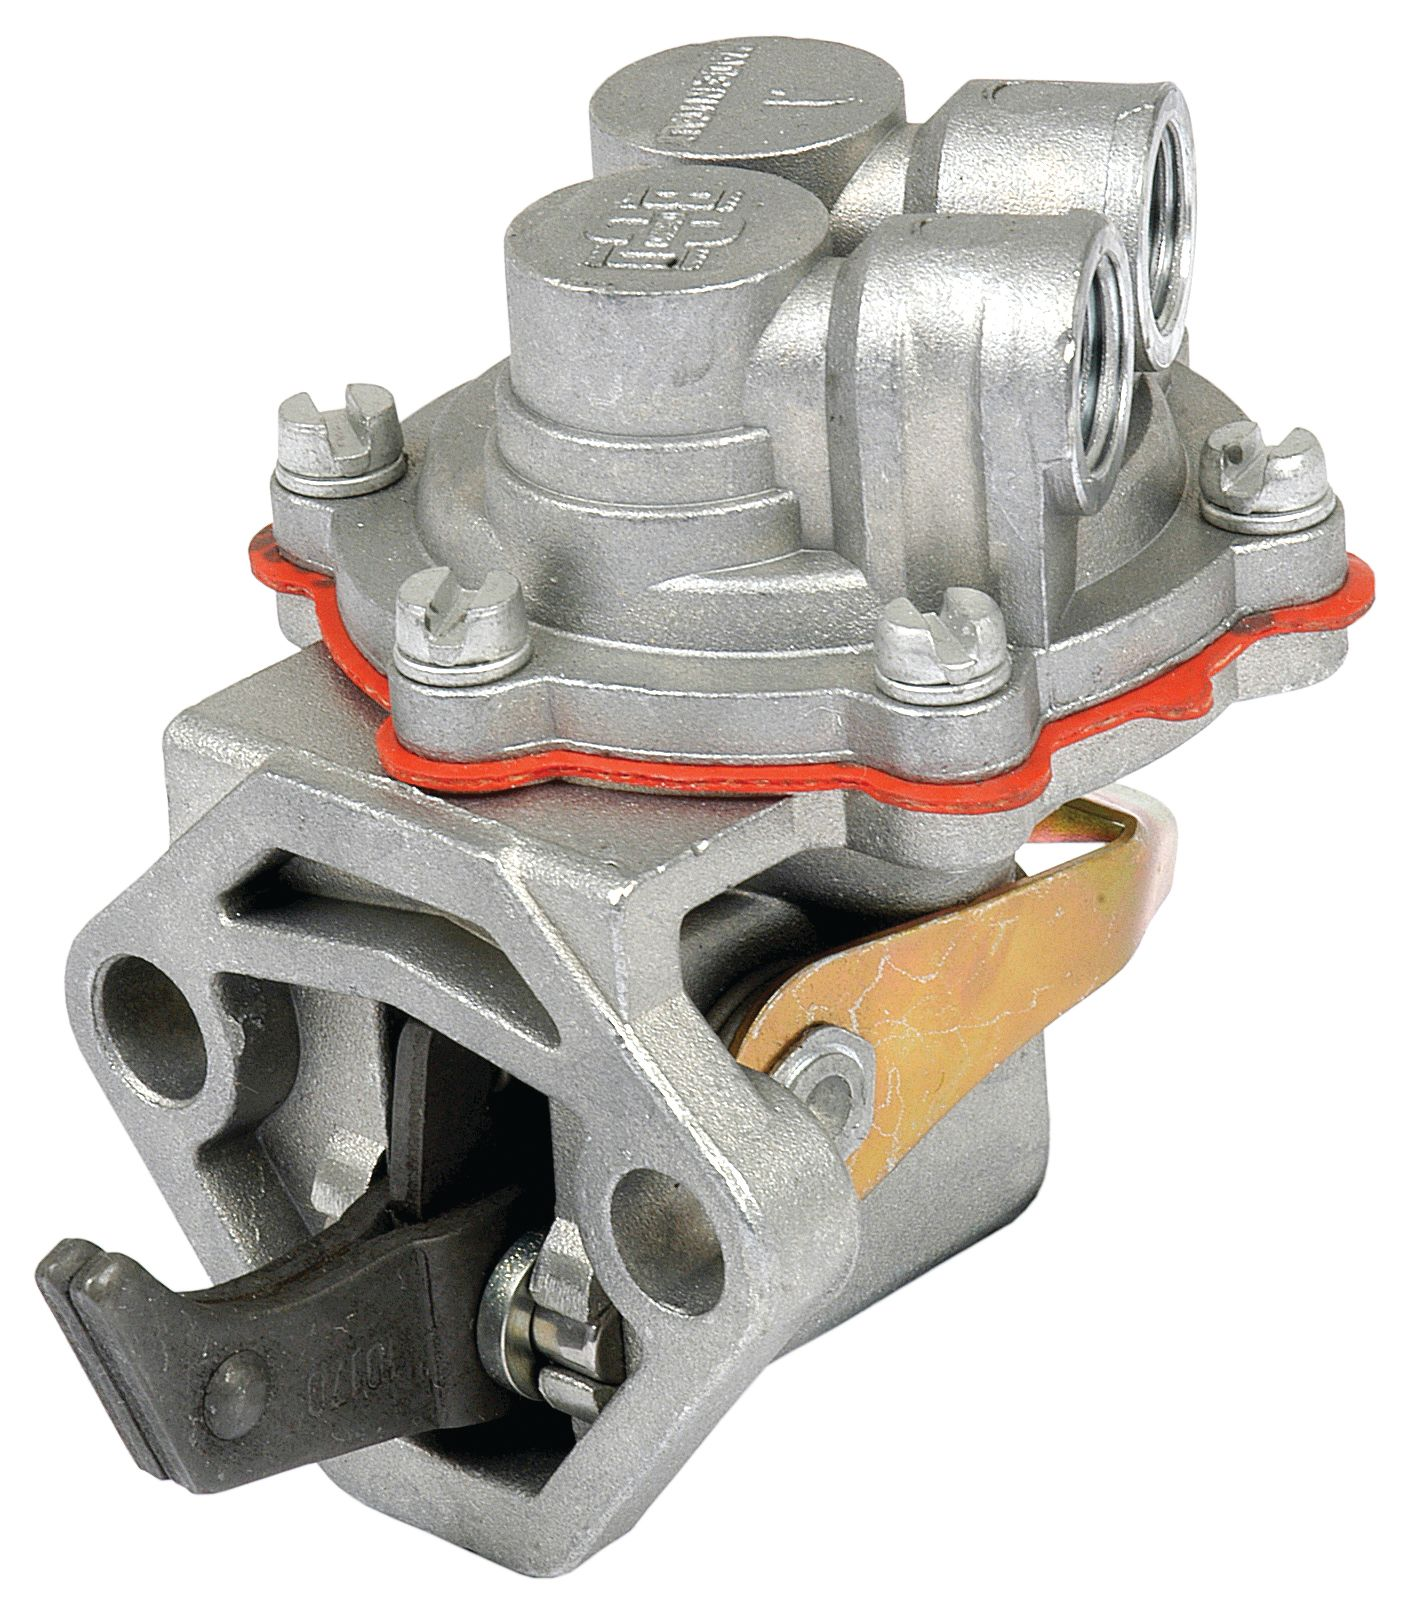 LEYLAND FUEL PUMP (2 HOLE)